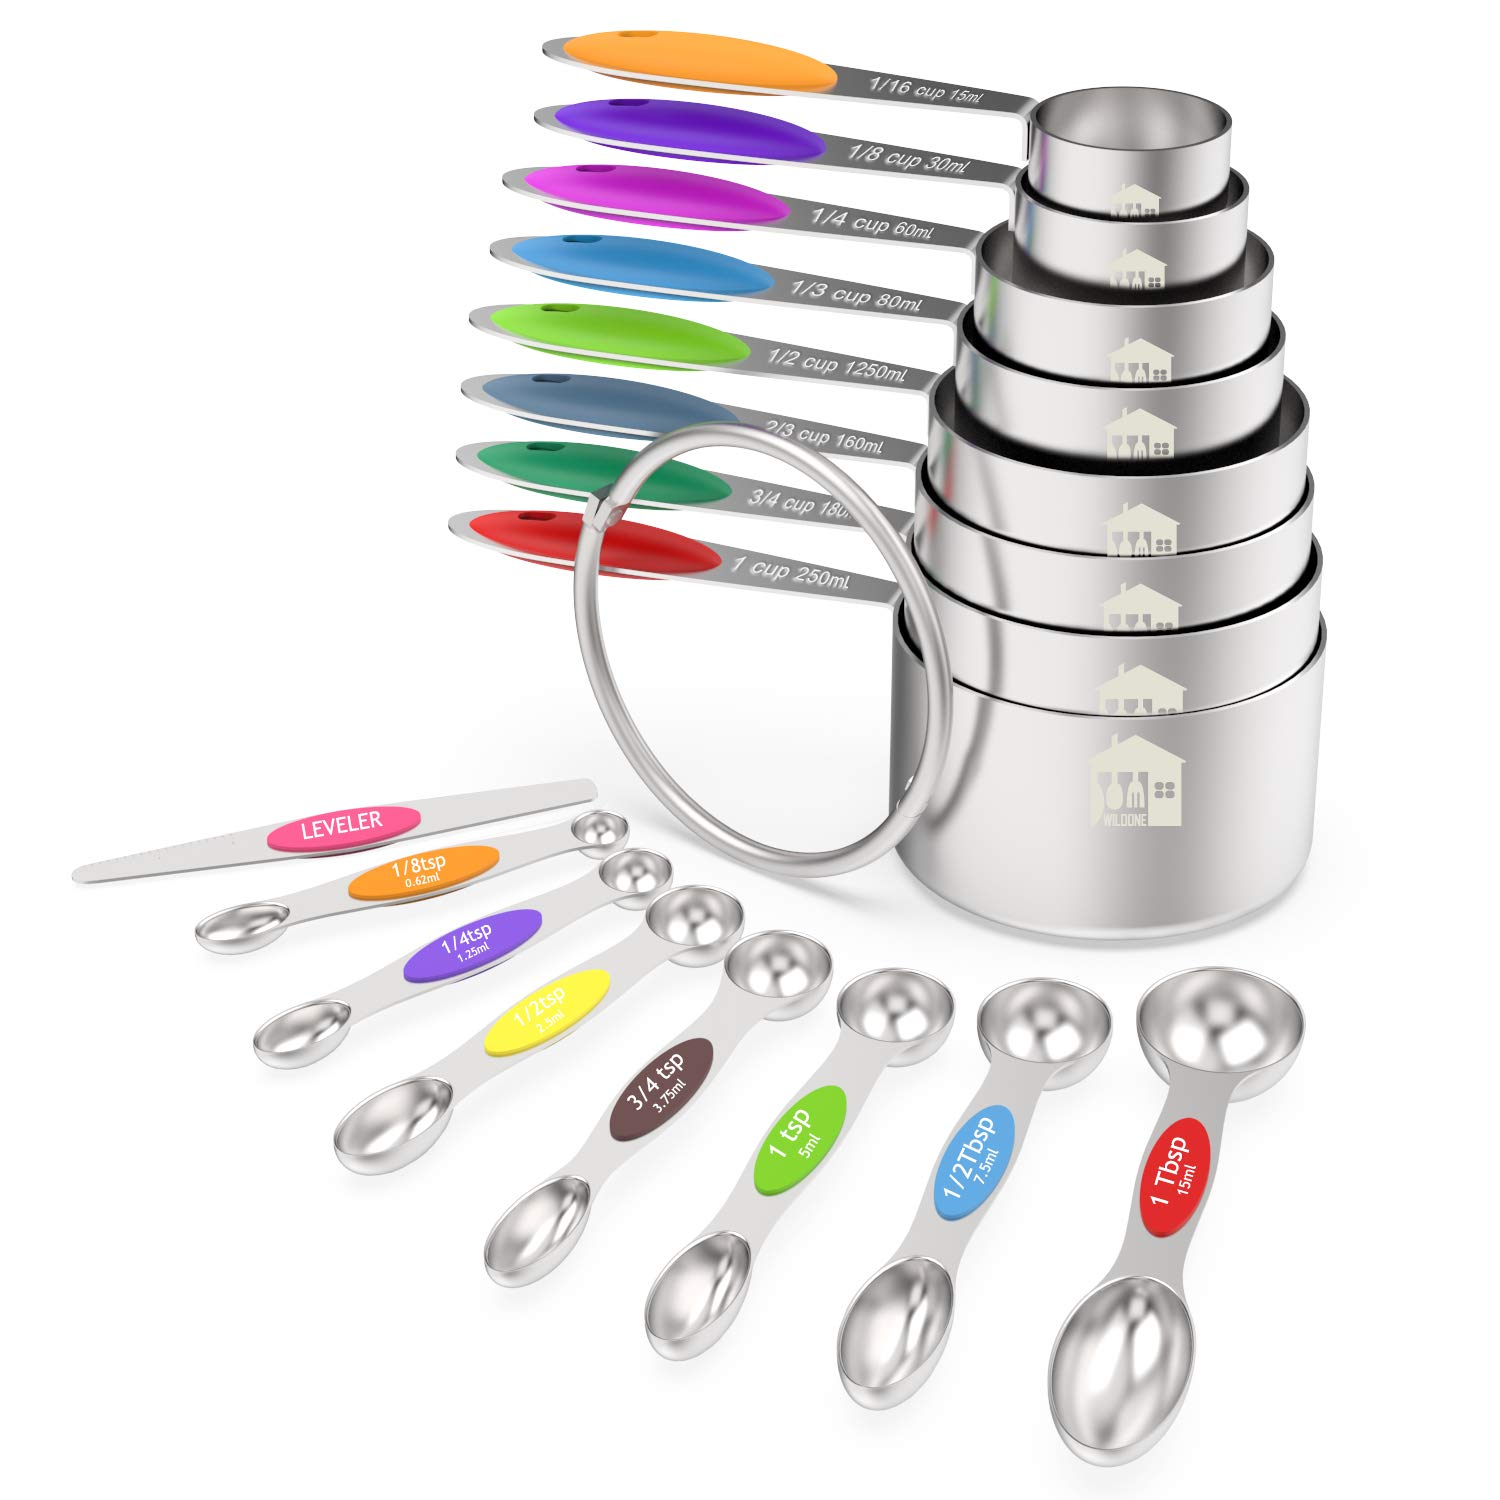 Measuring Cups and Magnetic Measuring Spoons Set, Wildone Stainless Steel 16 Piece Set, 8 Measuring Cups & 7 Double Sided Stackable Magnetic Measuring Spoons & 1 Leveler